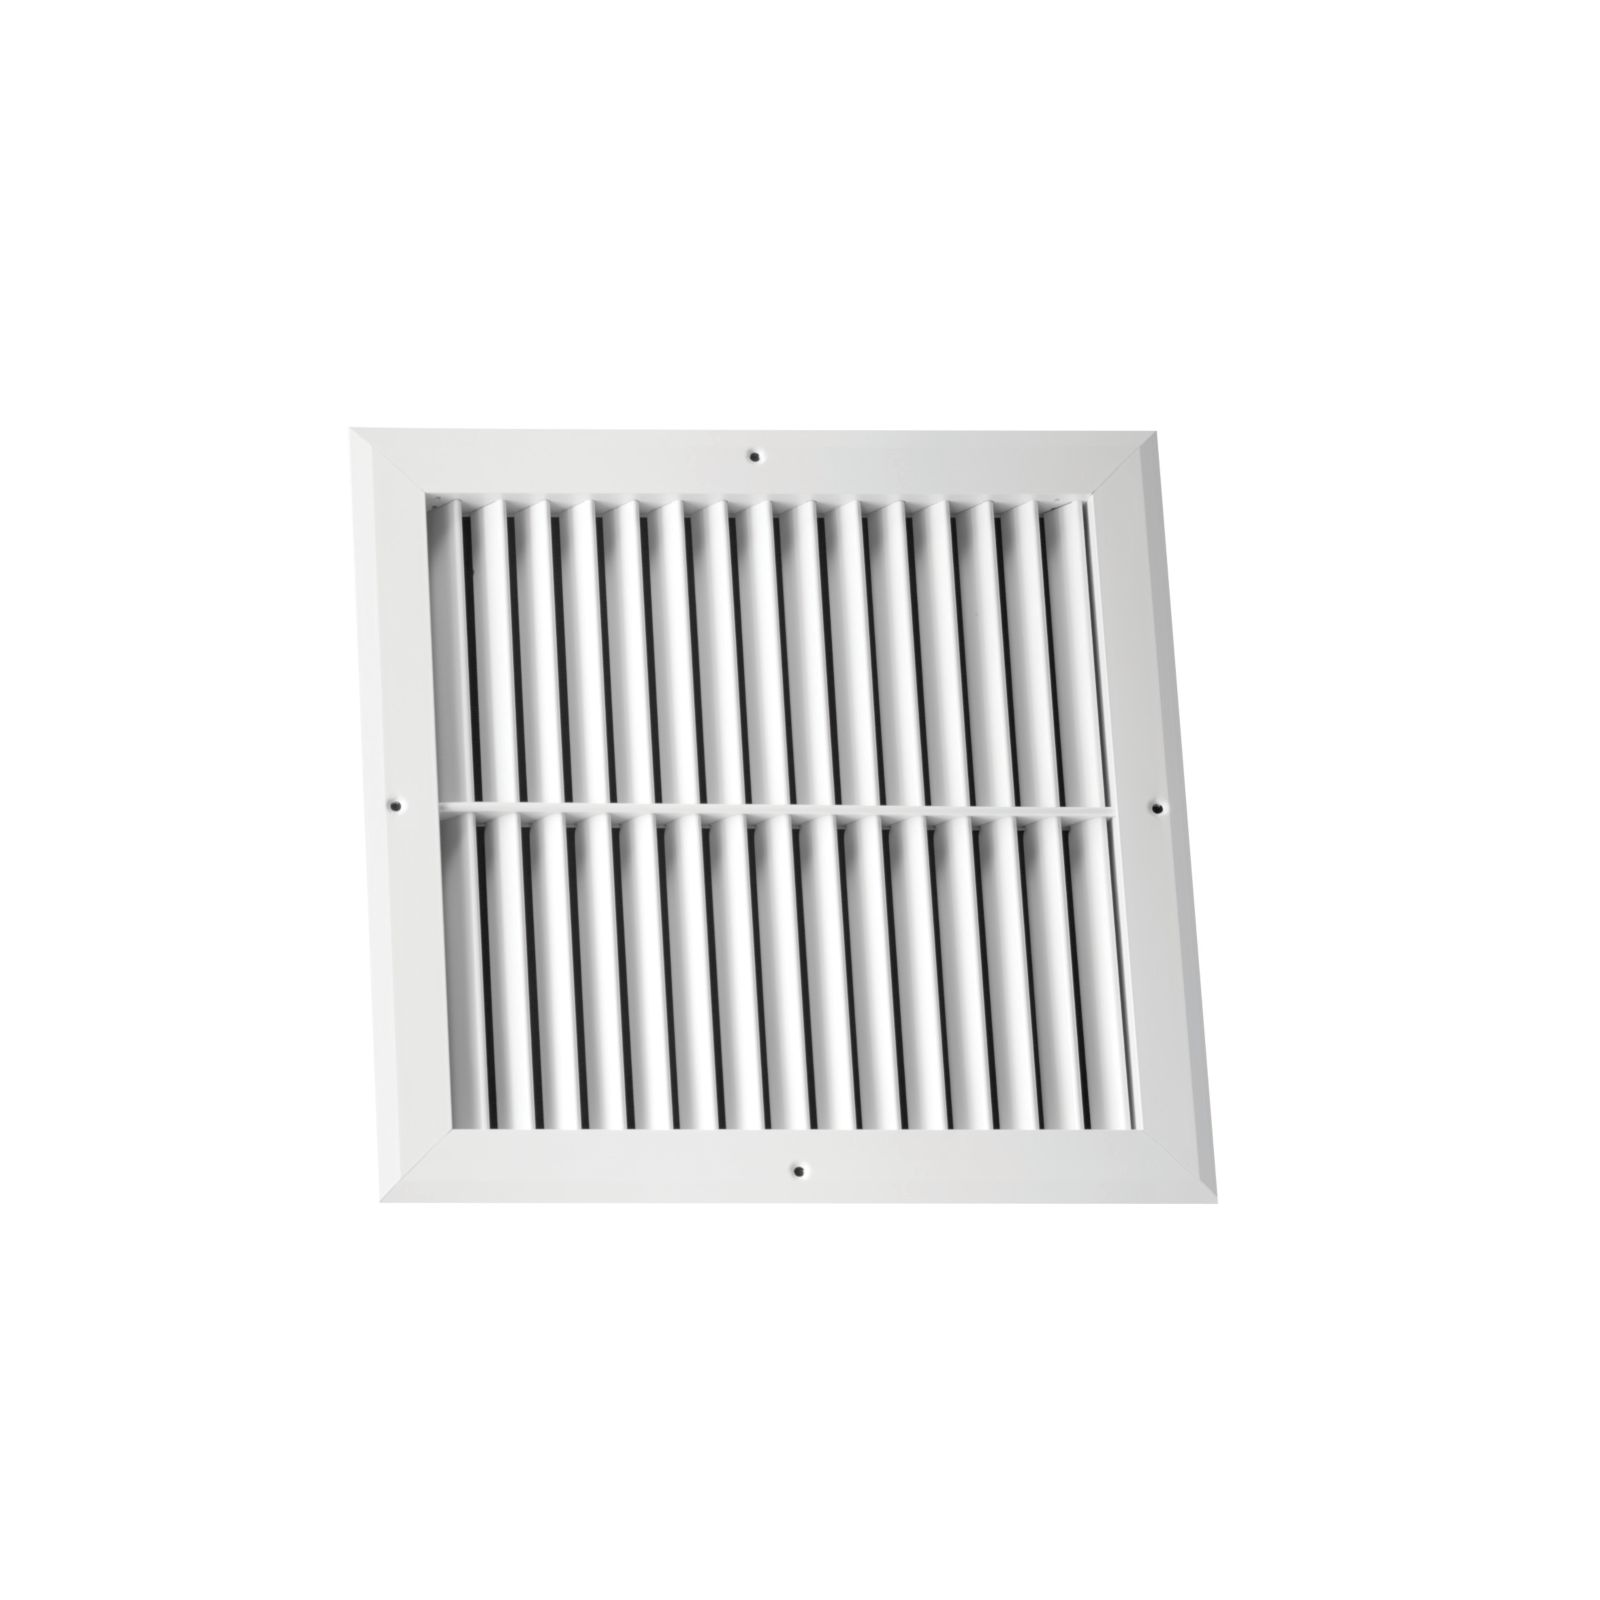 "Hart & Cooley 064066 - Aluminum Return Air Grille, 45-Degree Fixed Blade, White Finish, 24"" X 14"""